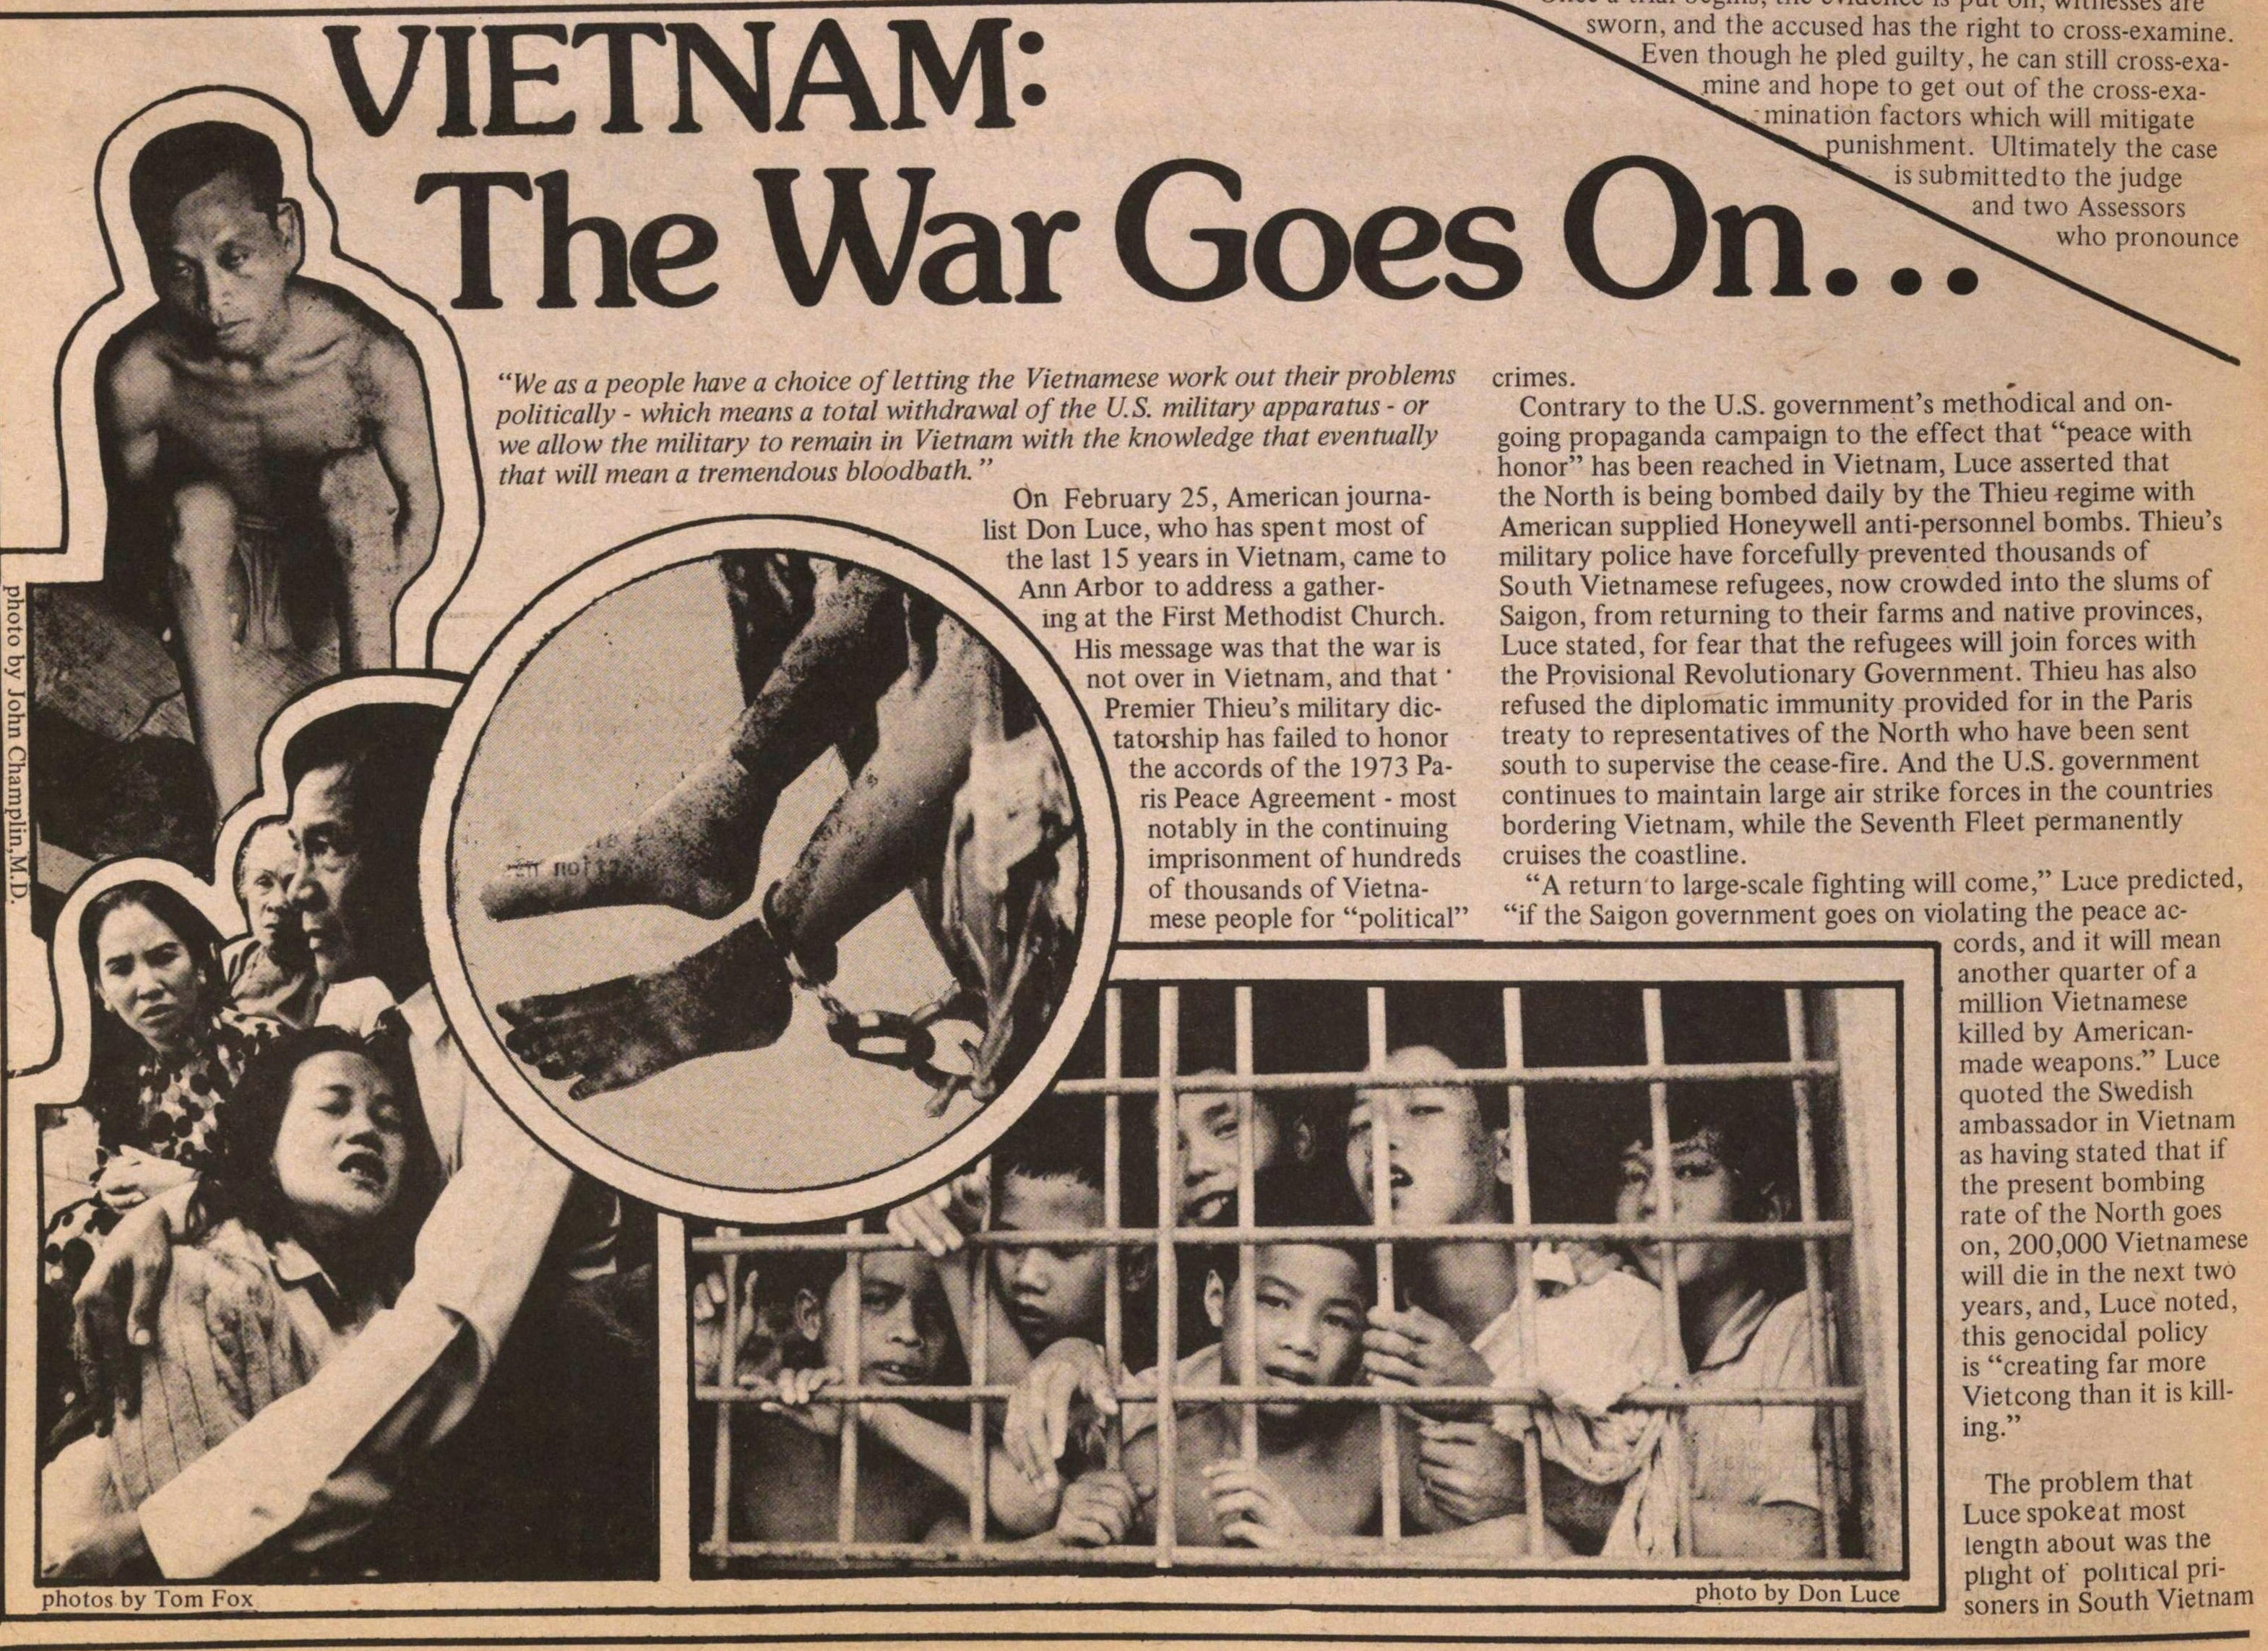 Vietnam The War Goes On... image